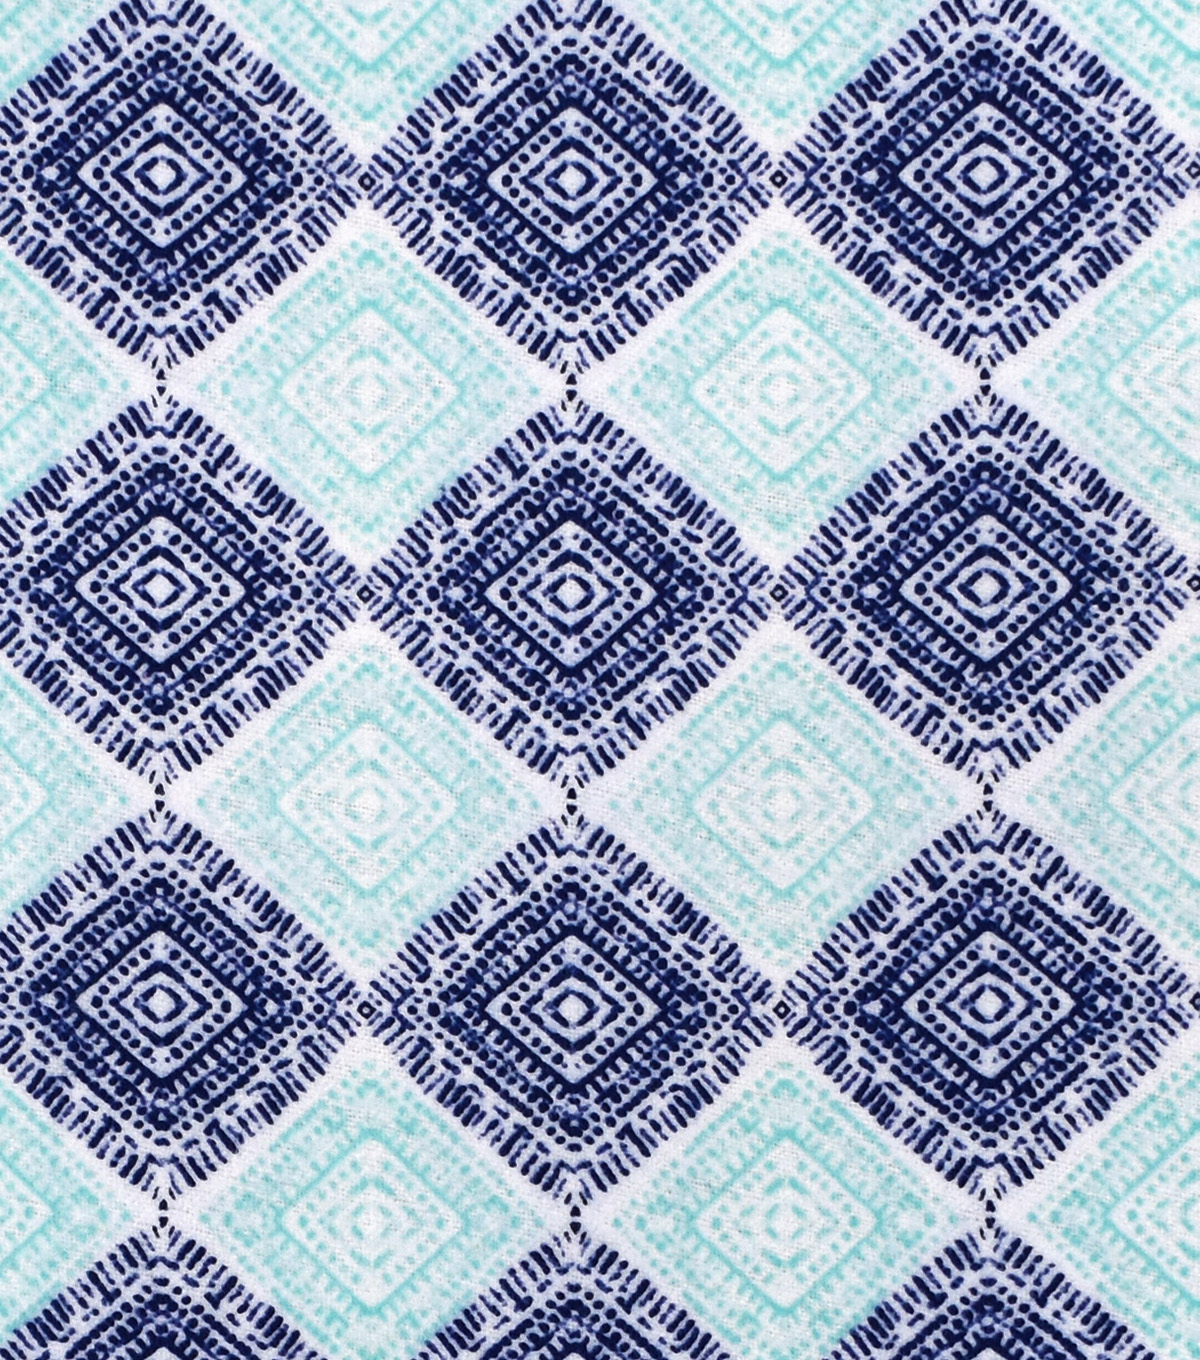 Snuggle Flannel Print Fabric 42\u0022-Blue Ink Print